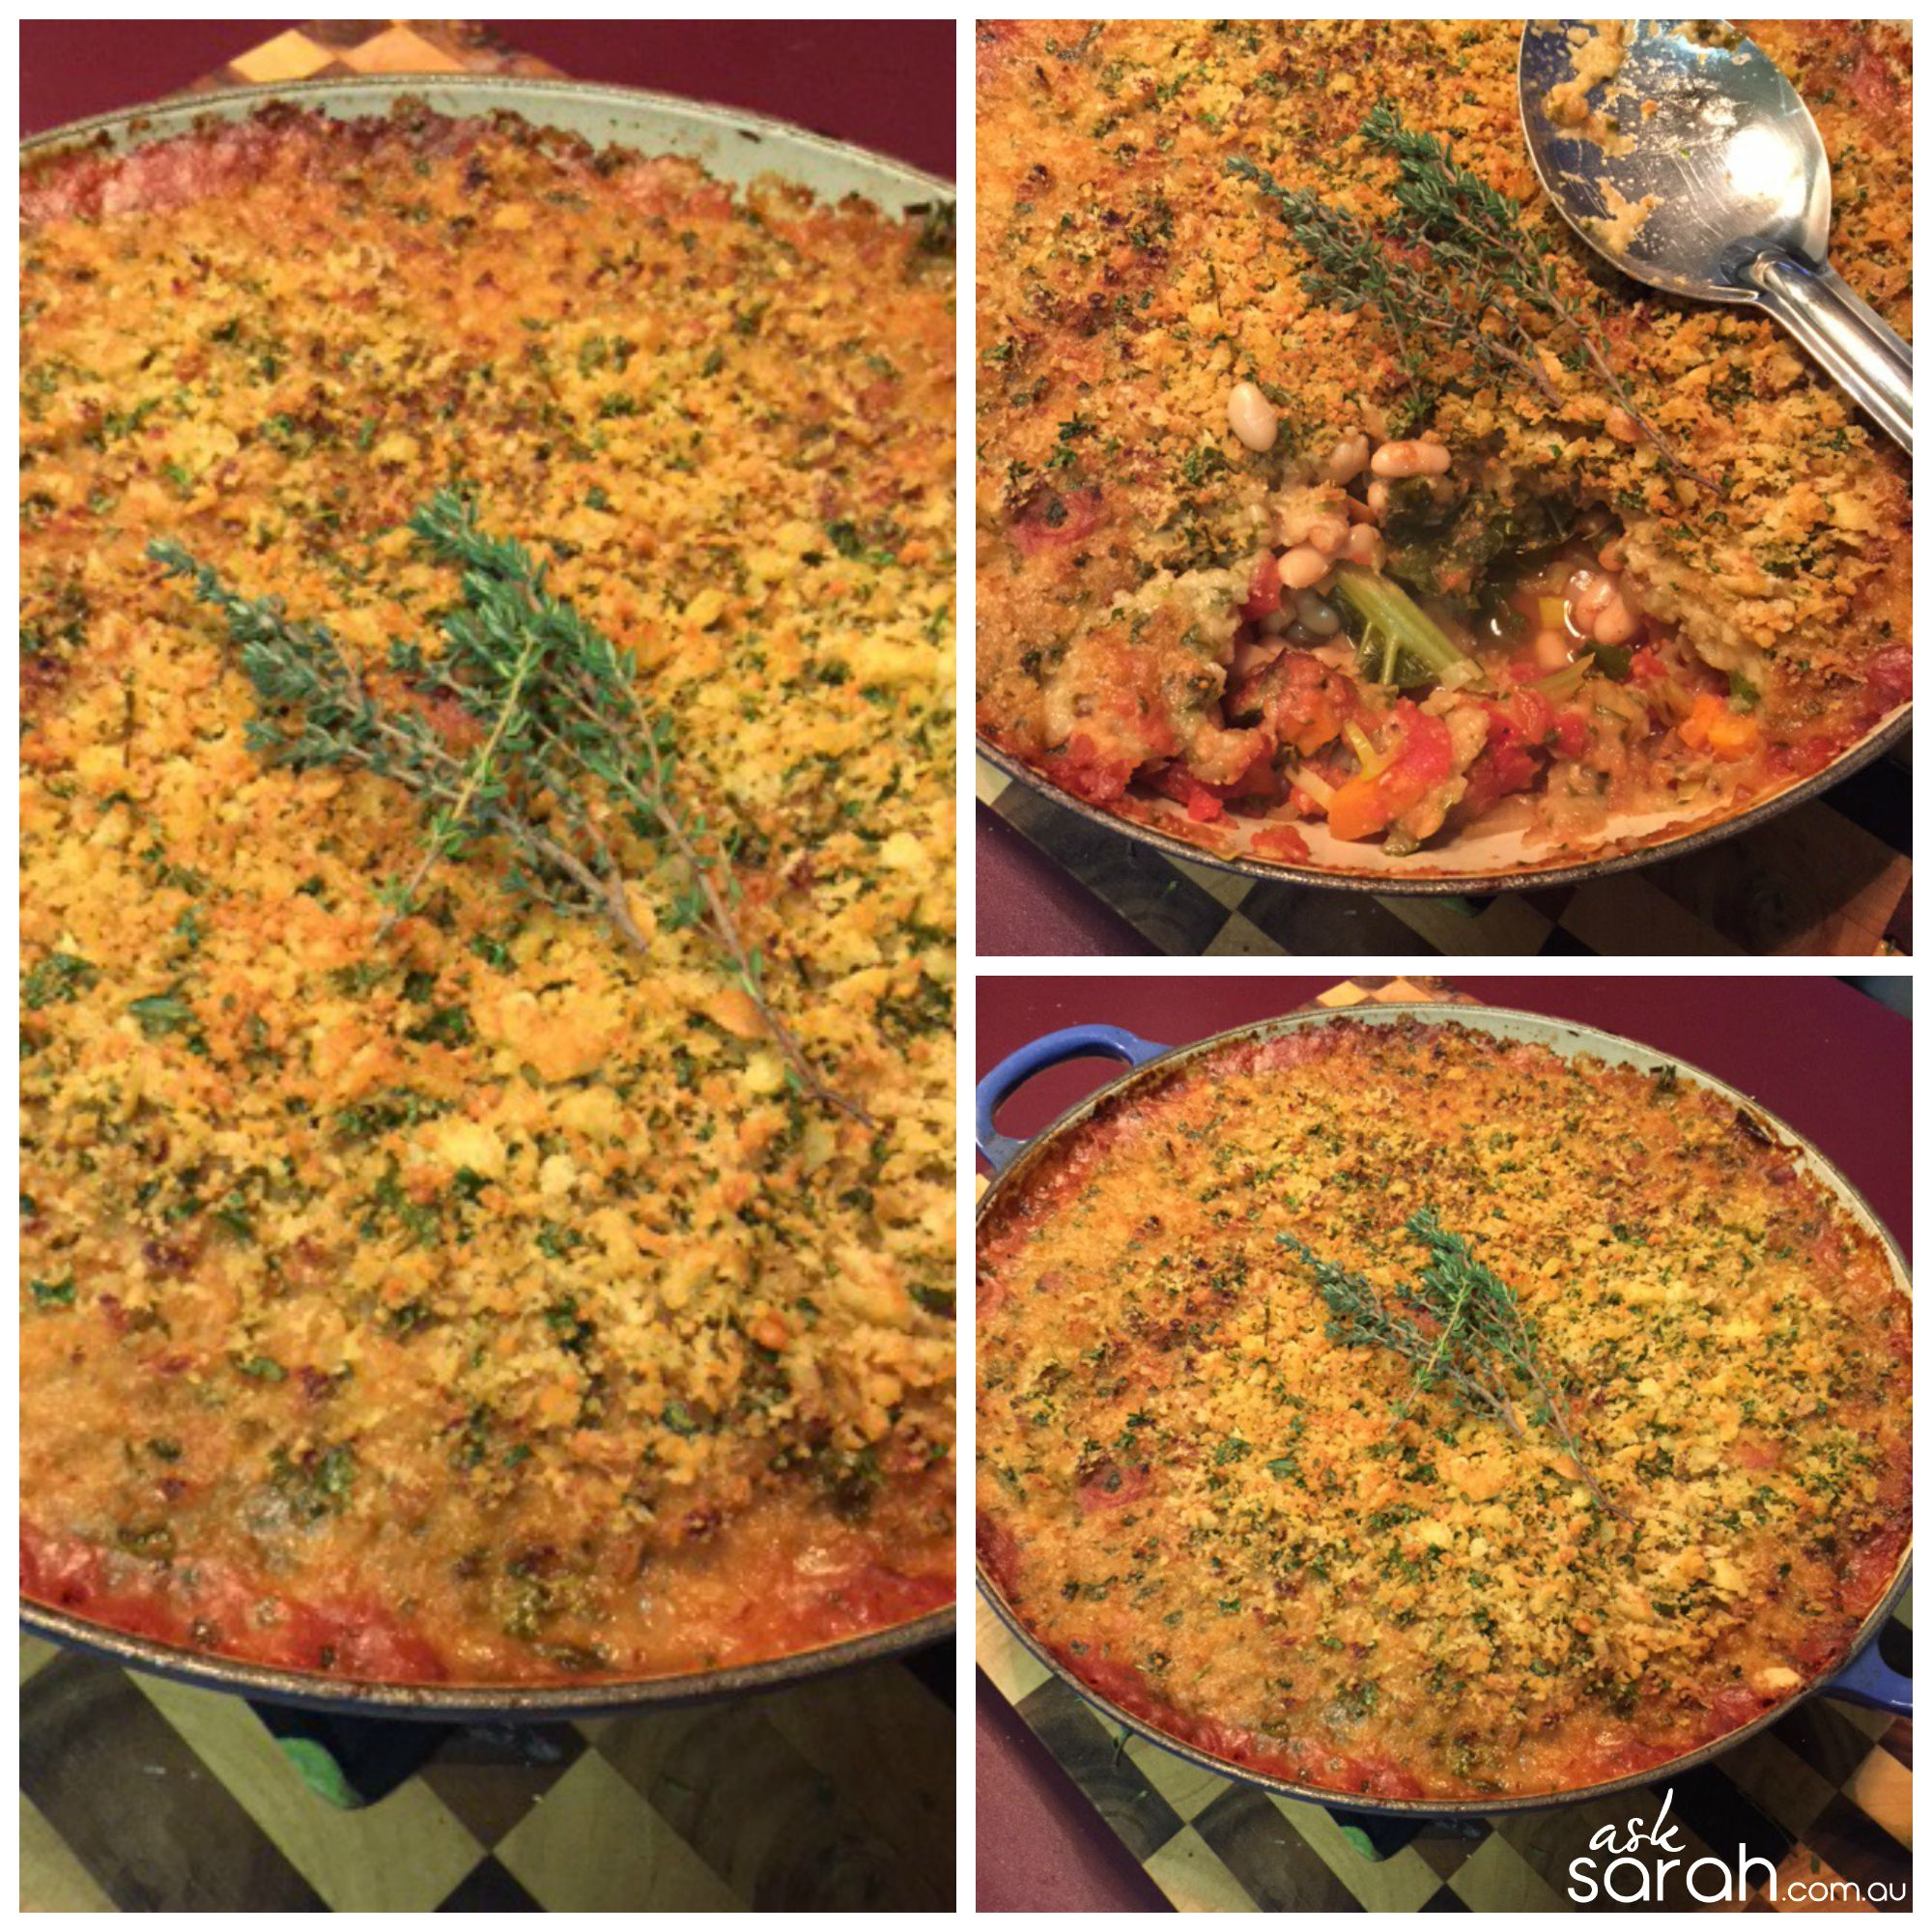 Recipe: French Style Vegetarian Cassoulet {Hearty Winter Bean & Vegetable Casserole}